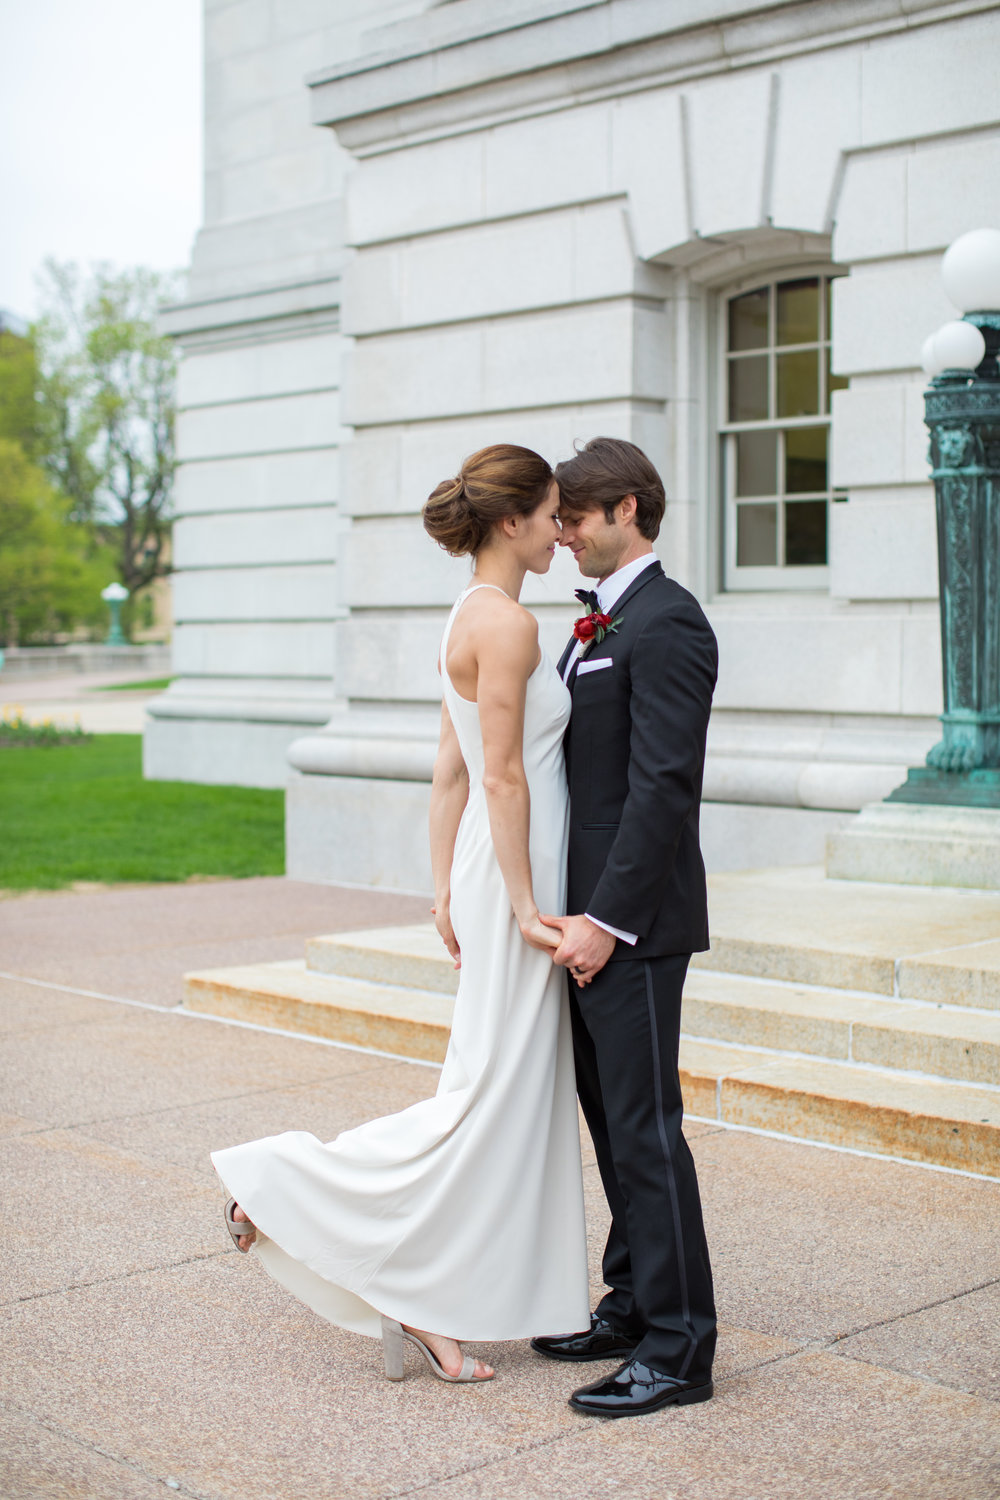 Midwest wedding photographer - first look 5